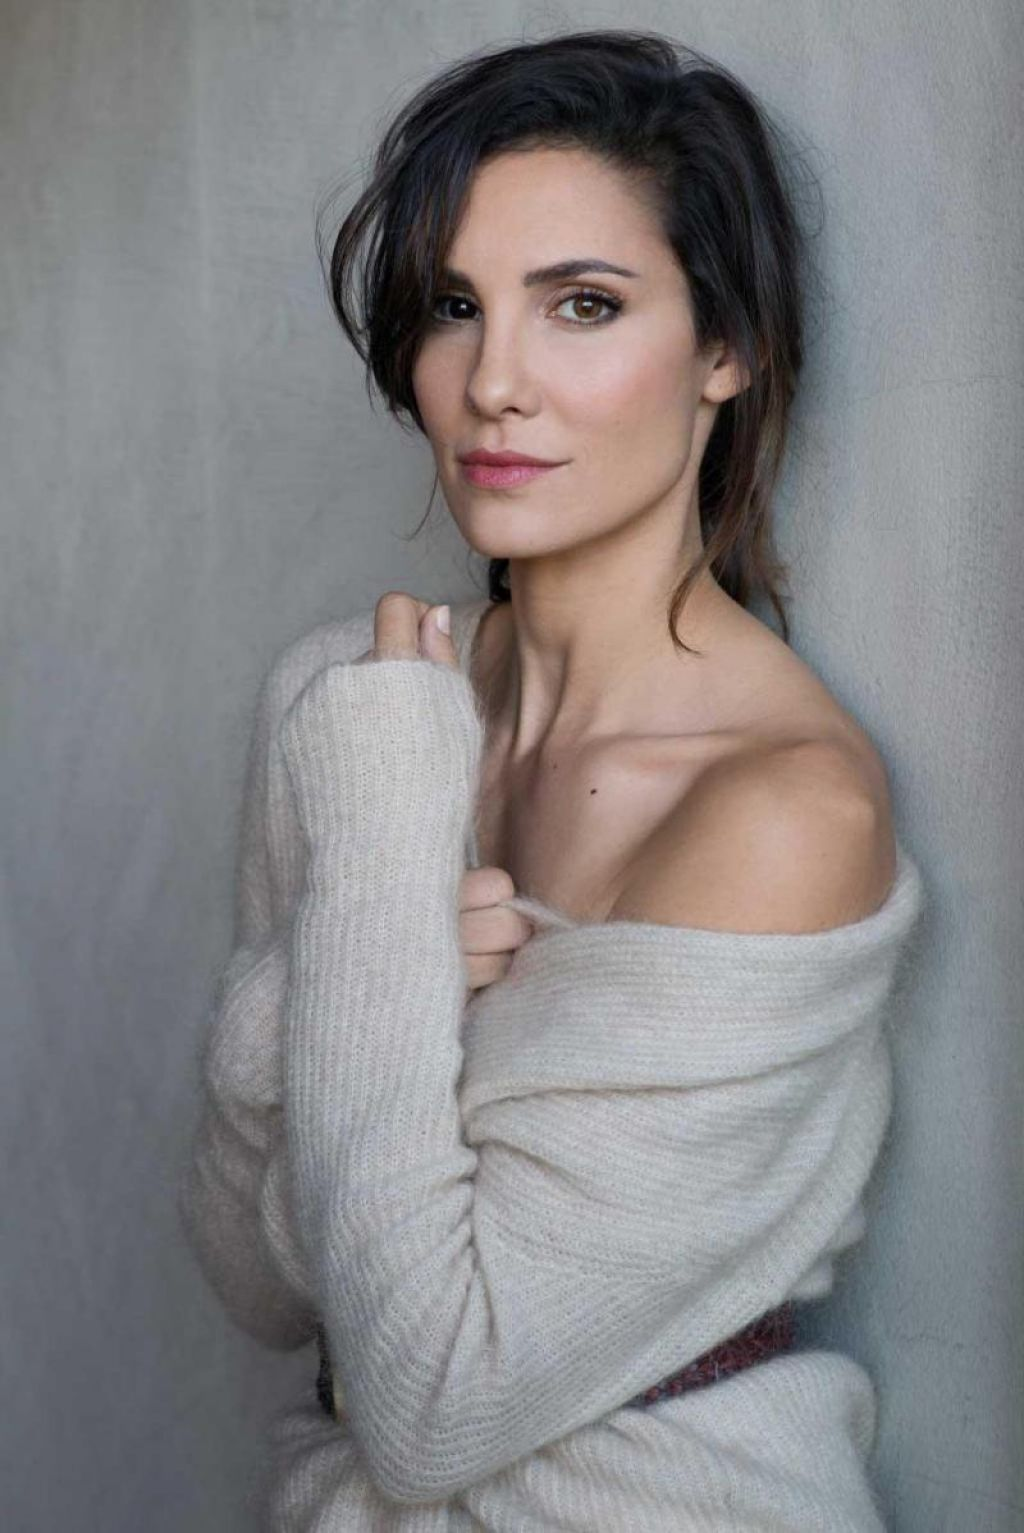 34 Hot Daniela Ruah Bikini Pictures Are Show Her Sexy Body And Eyes